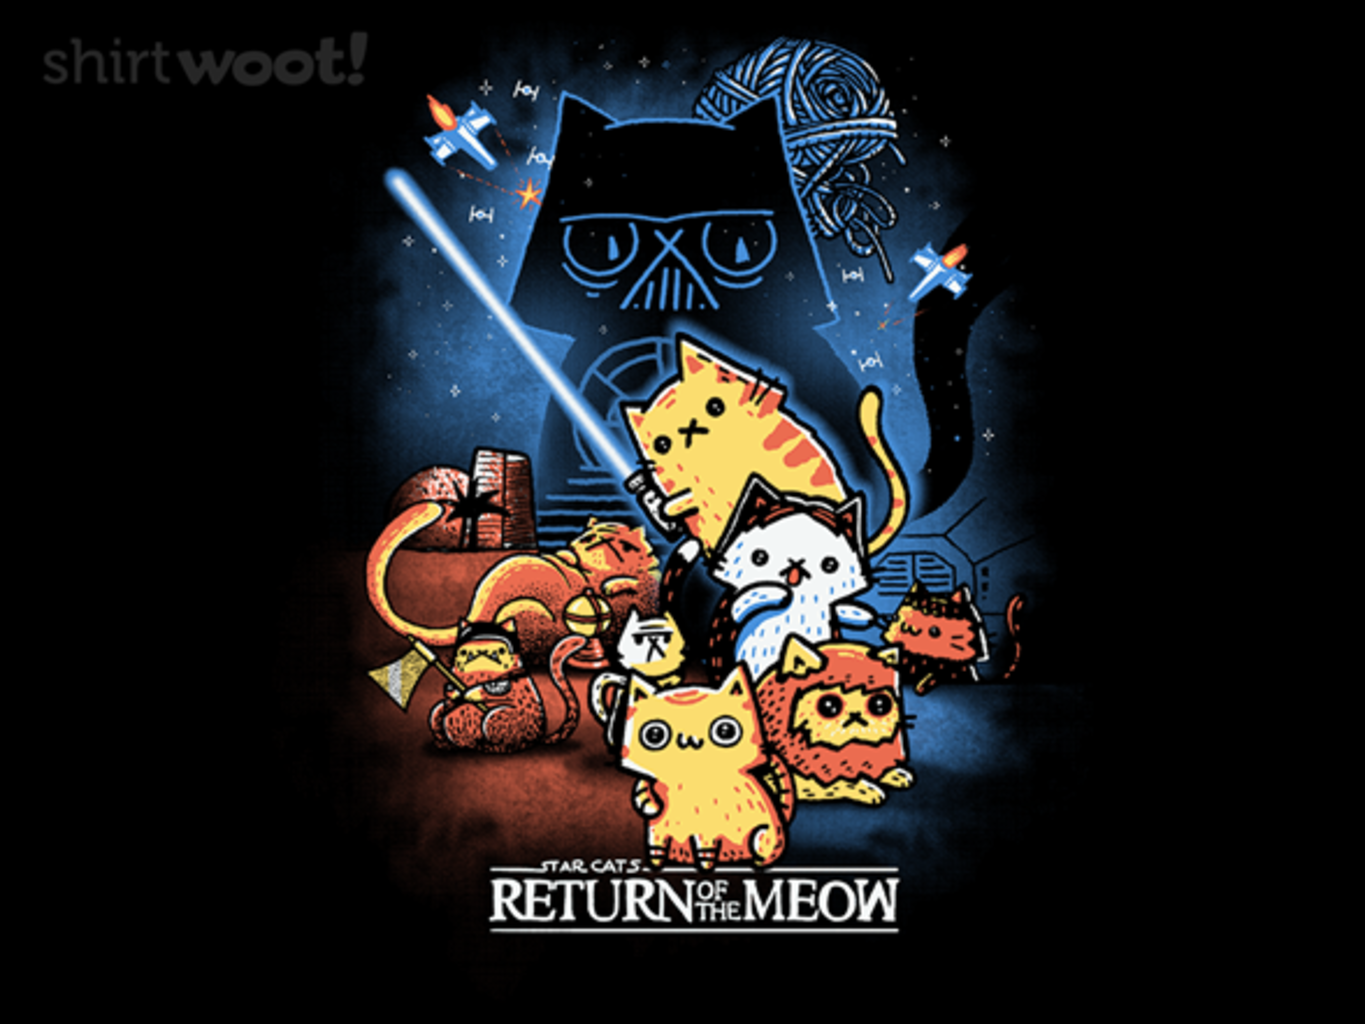 Woot!: Return of the Meow